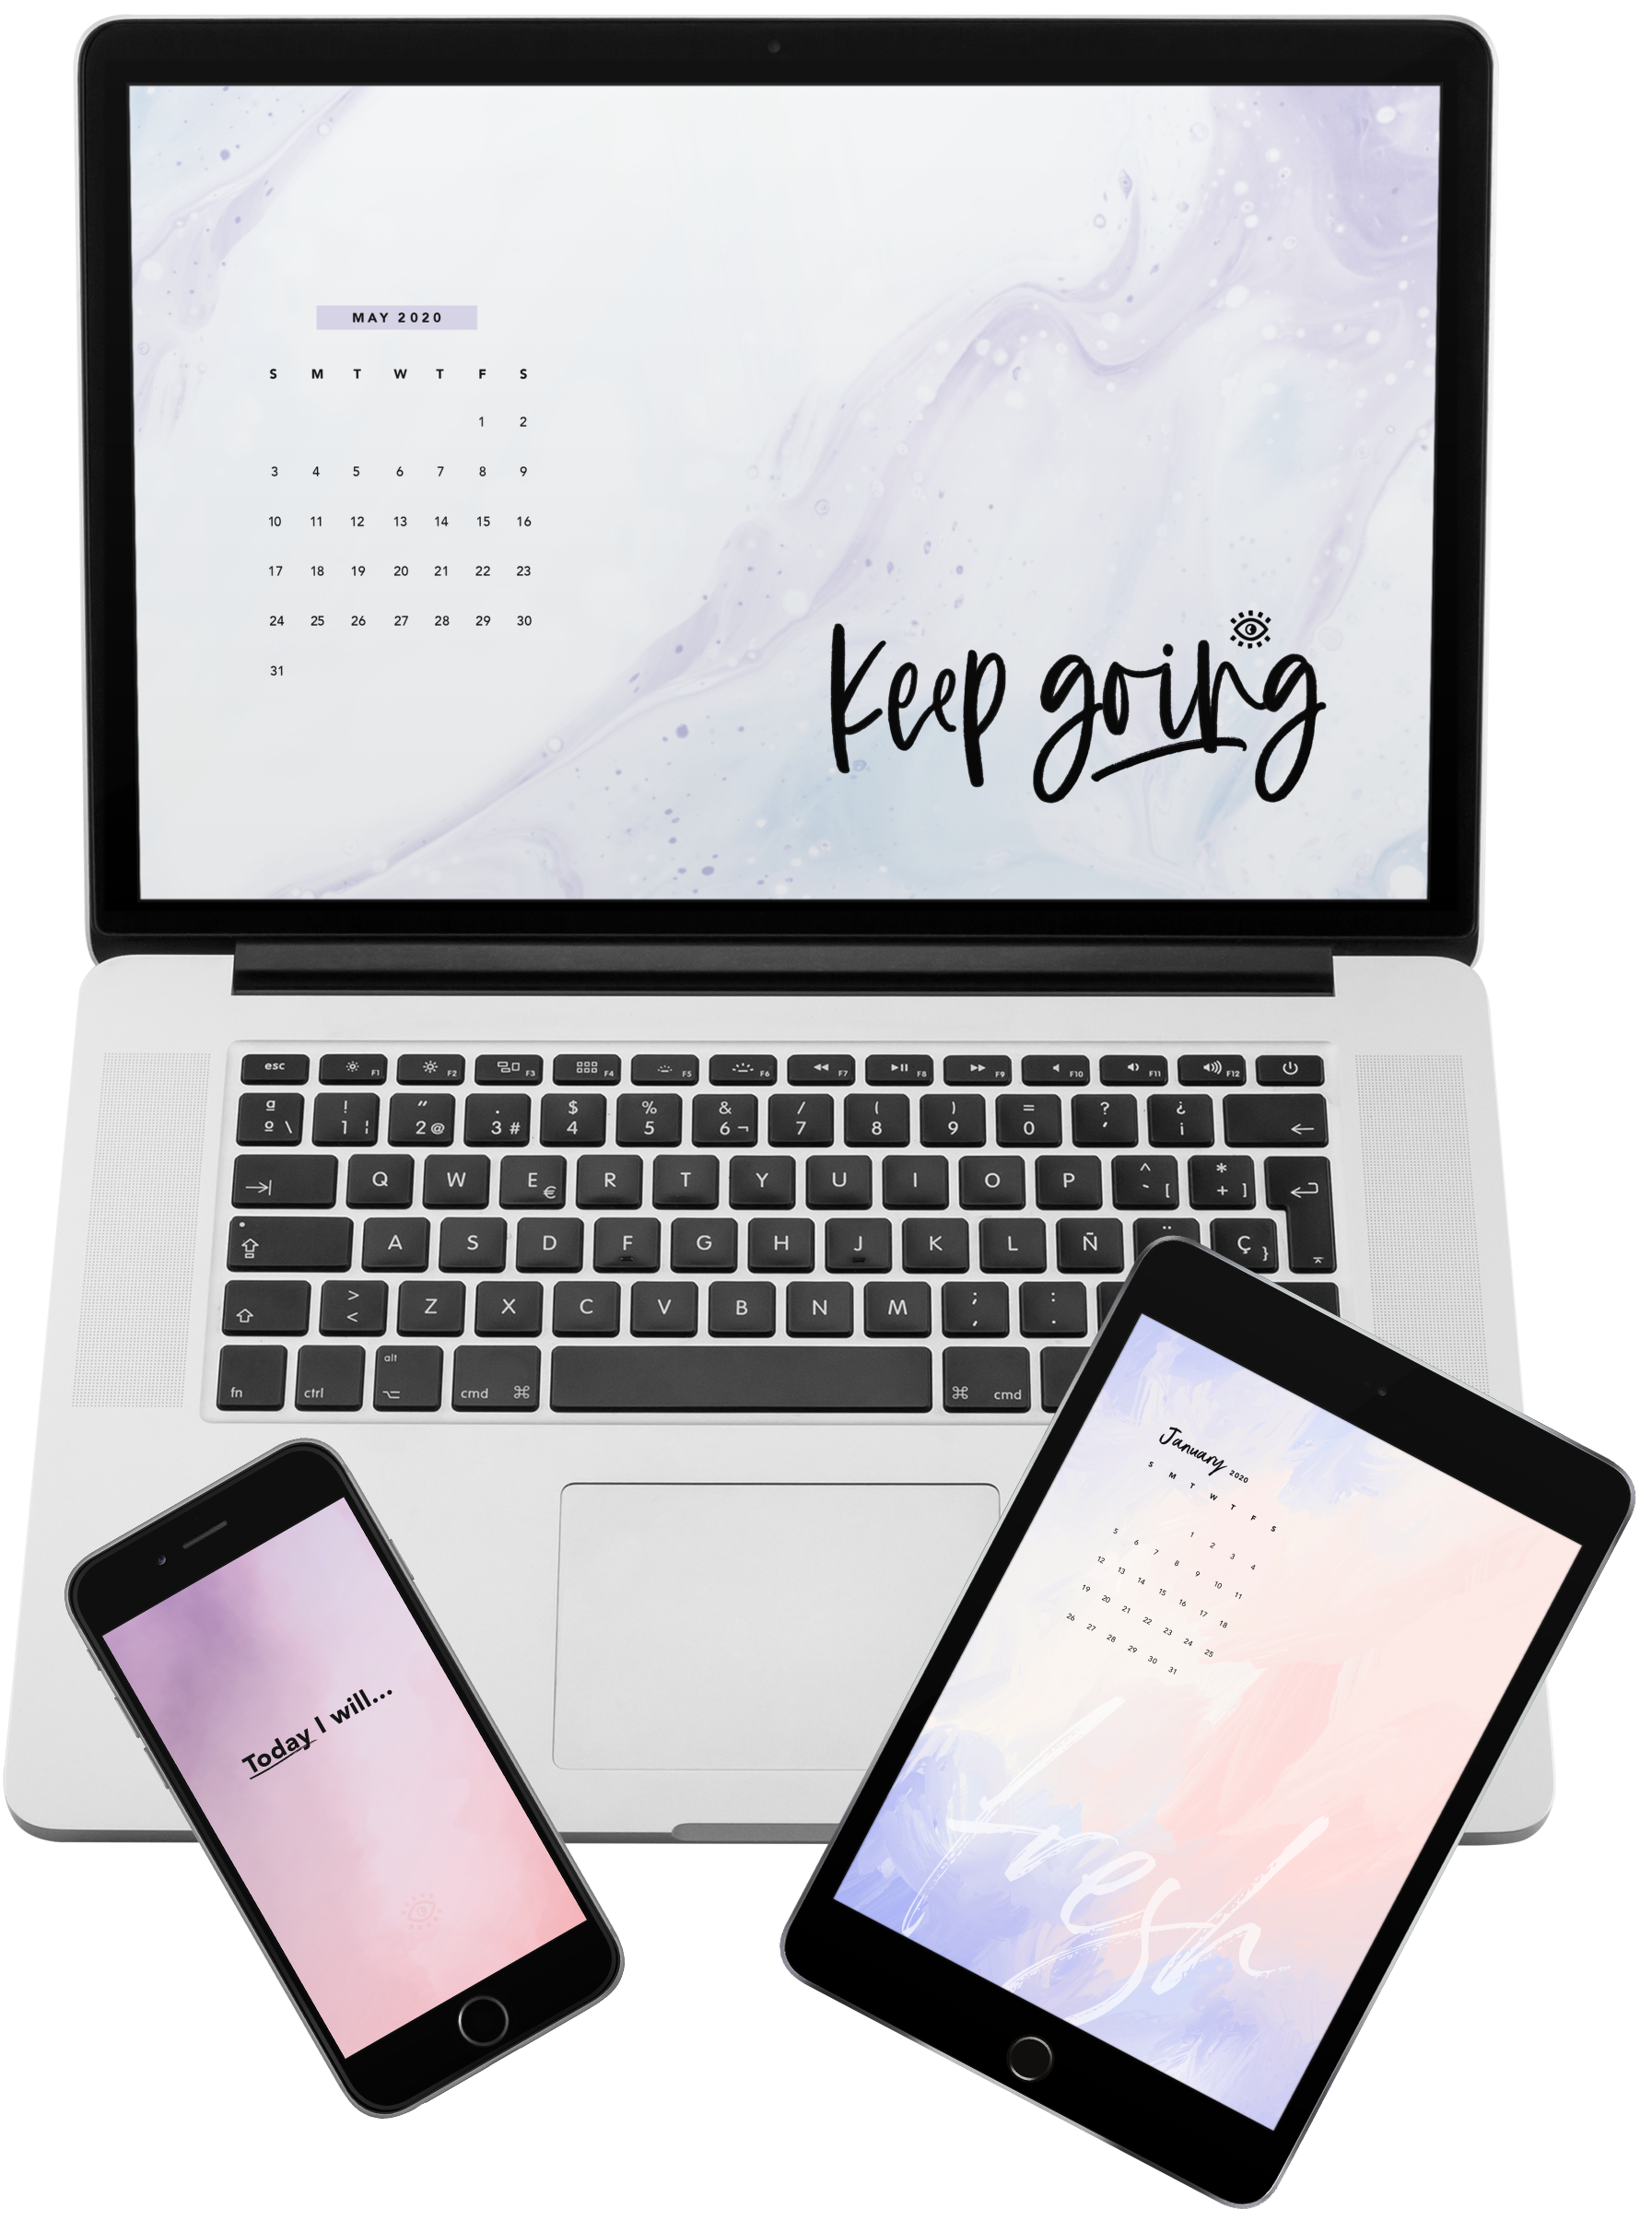 mockup-of-a-macbook-pro-with-ipad-mini-and-iphone-set-over-a-png-background-a11900 (4)